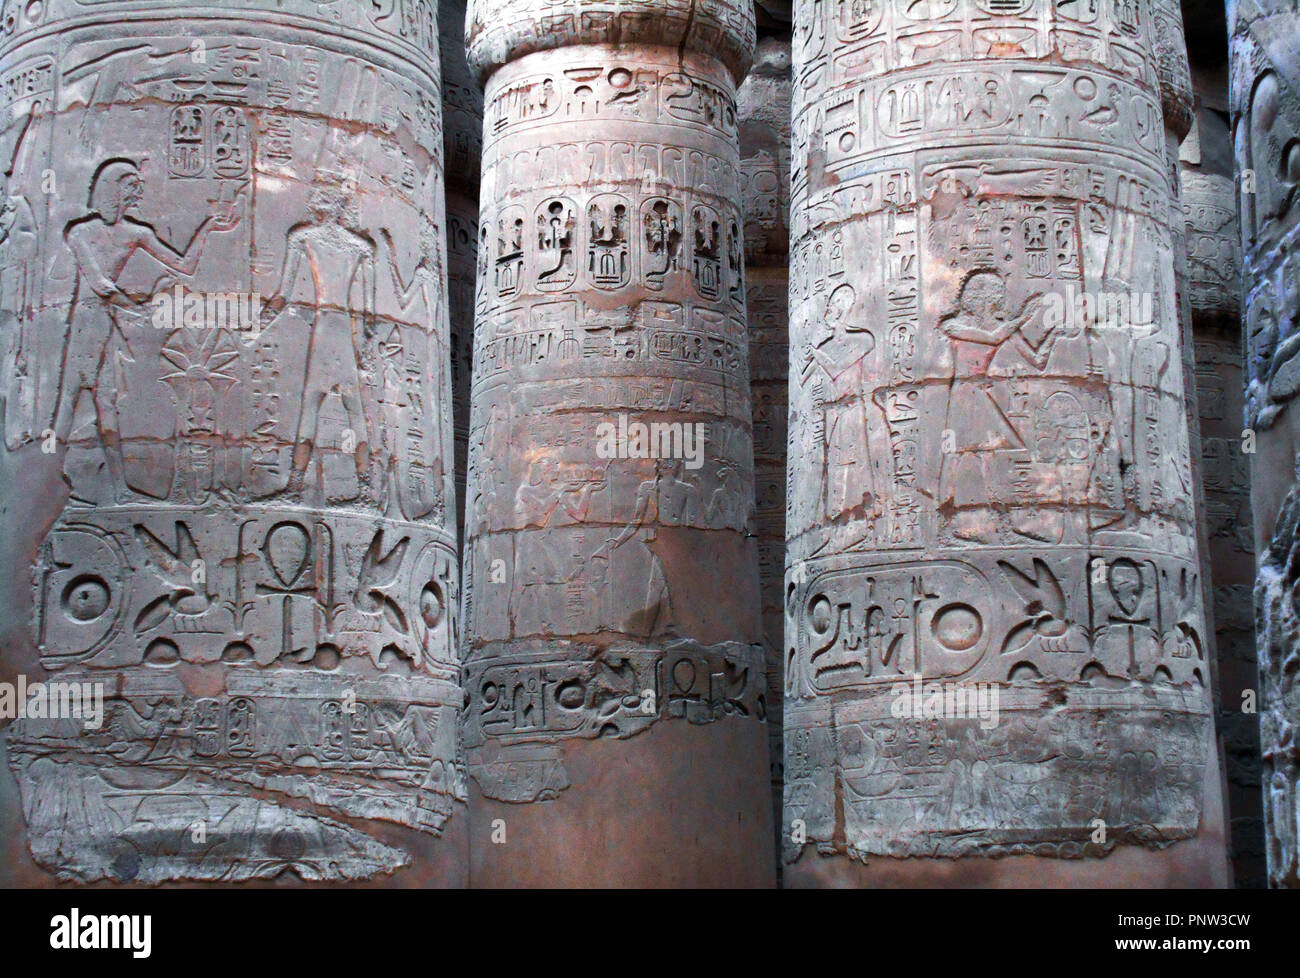 Pillars with hieroglyphics written on them at an ancient and historic site in Egypt. - Stock Image